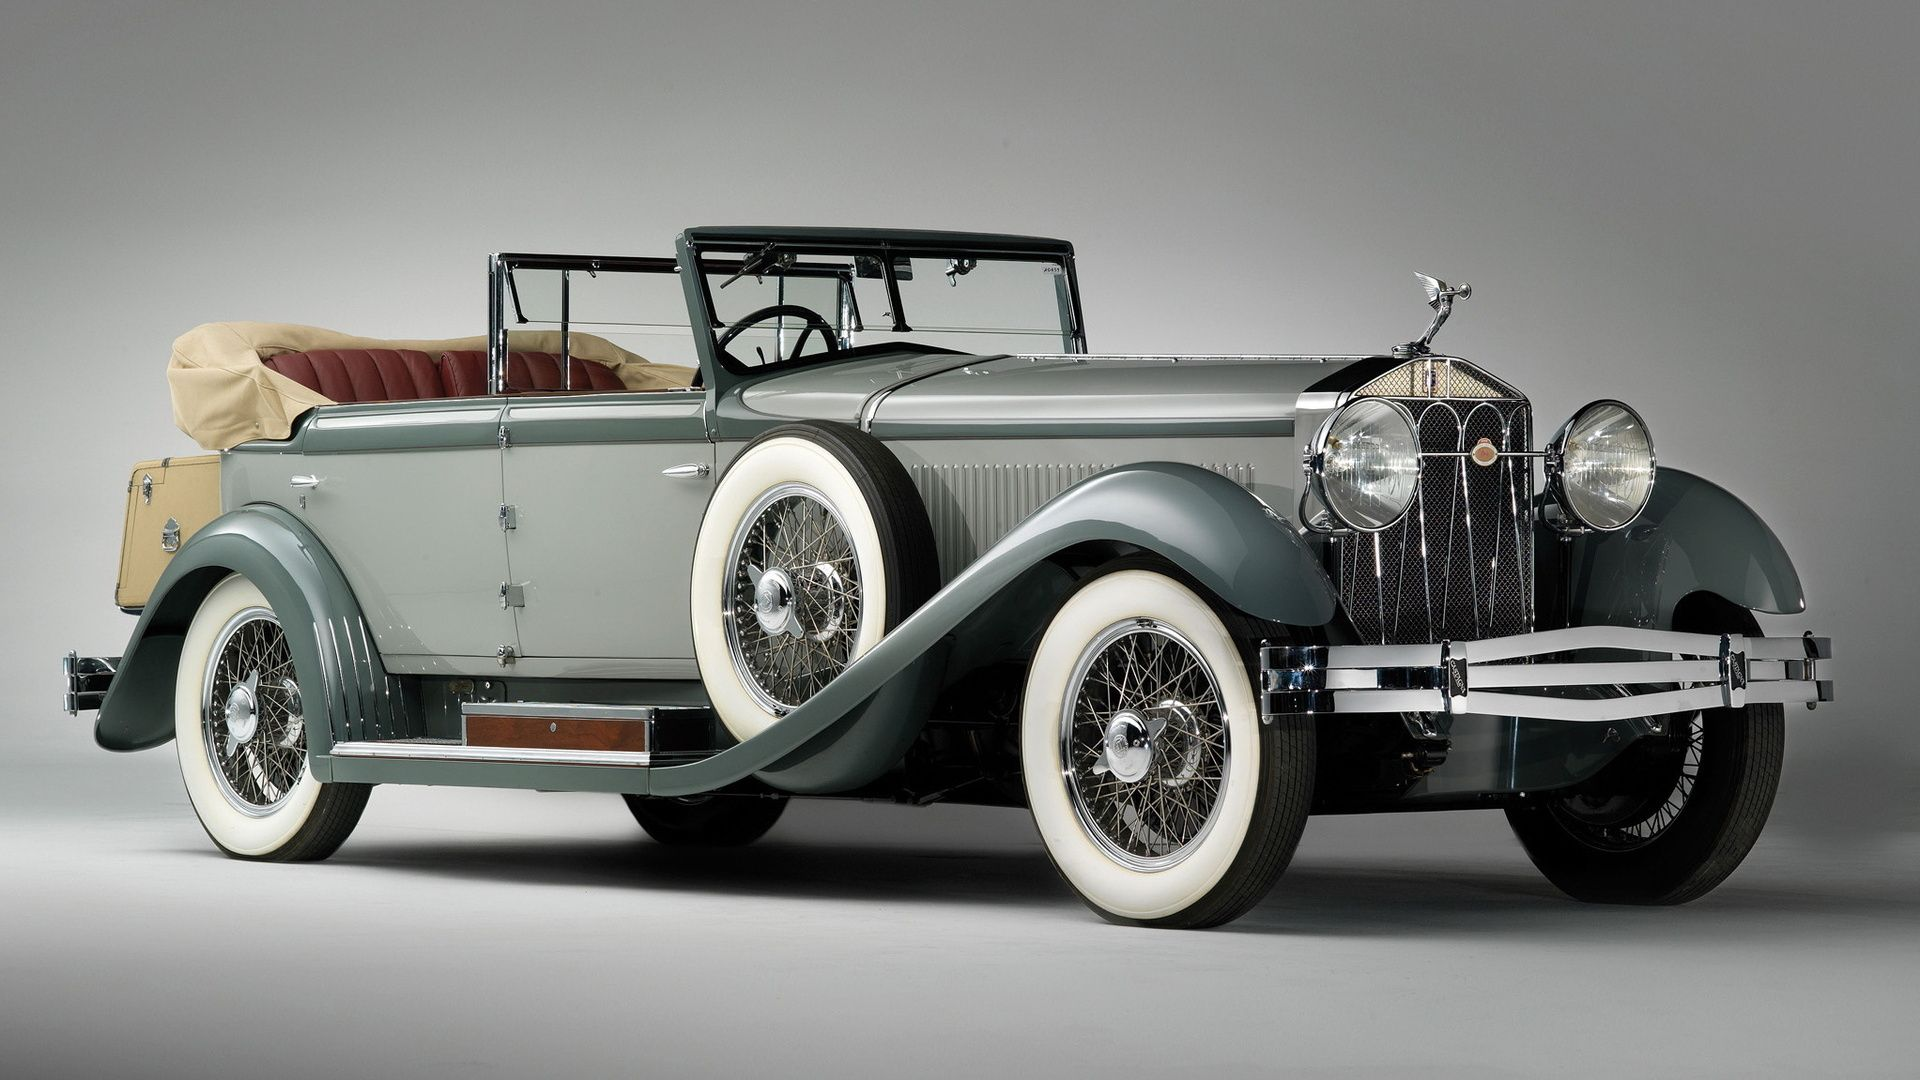 17 Best images about Vintage Cars on Pinterest | Cars, Chevy and ...